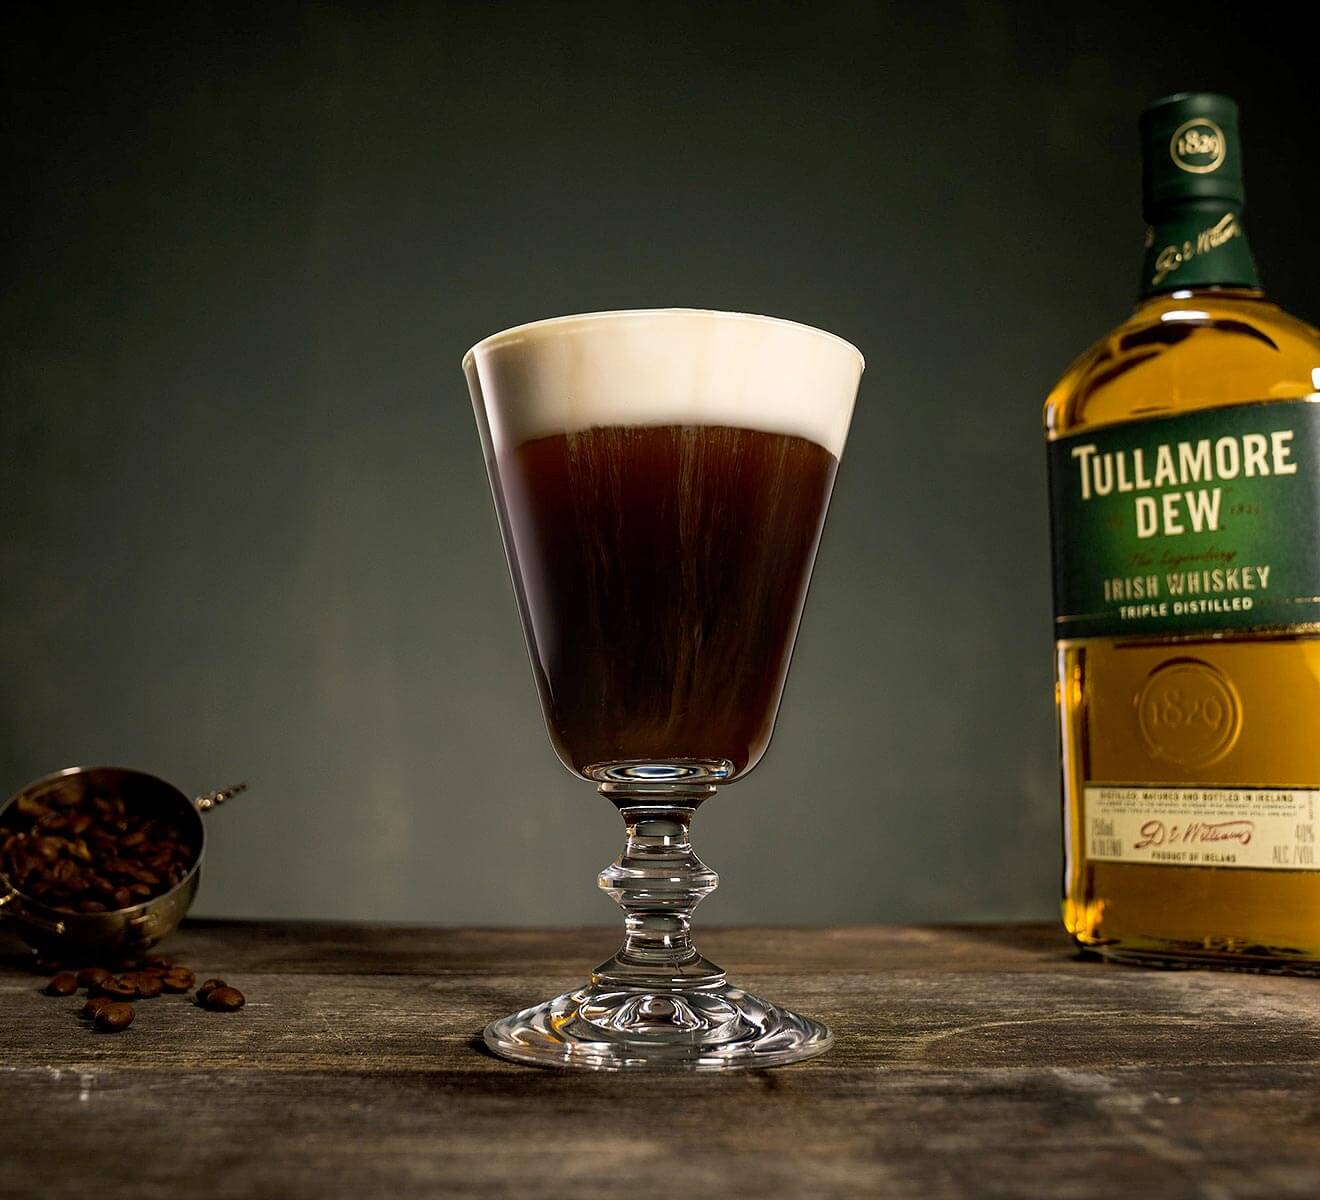 Tullamore D.E.W. Irish Coffee